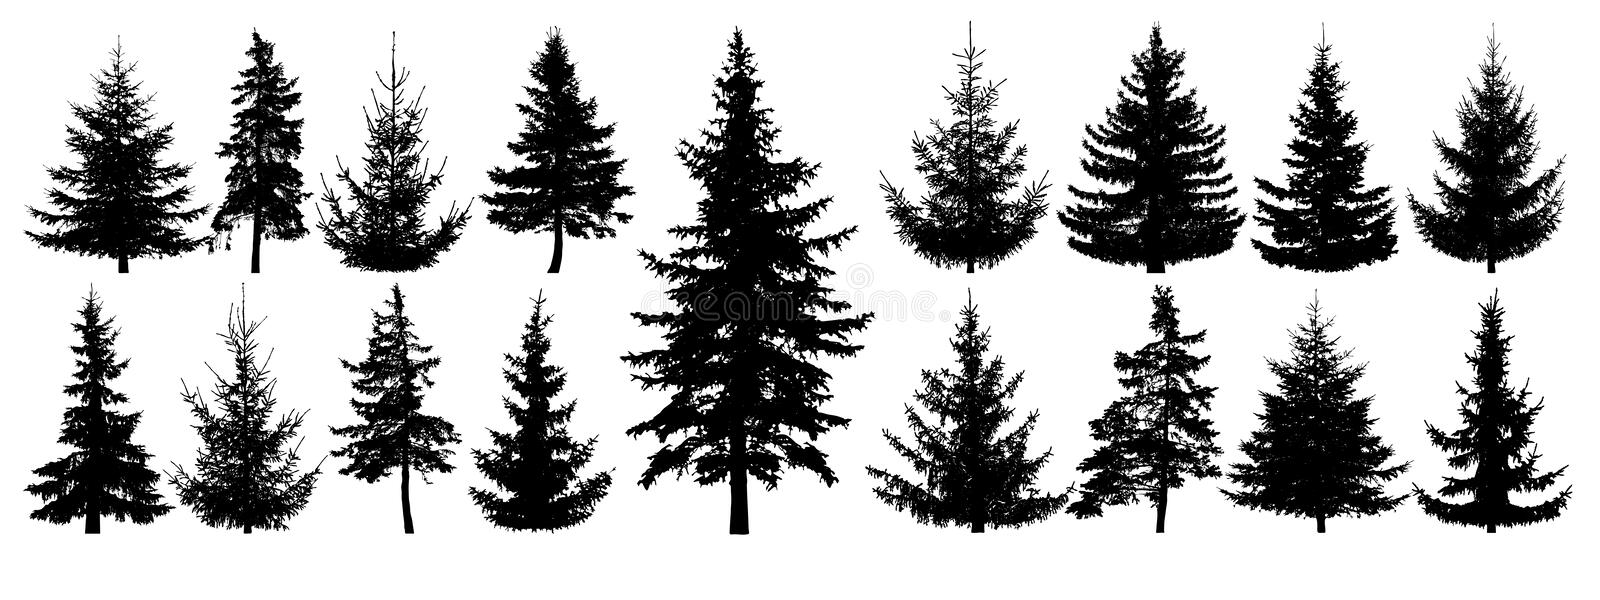 Arbres forestiers réglés Silhouette d'isolement de vecteur Forêt conifére illustration de vecteur